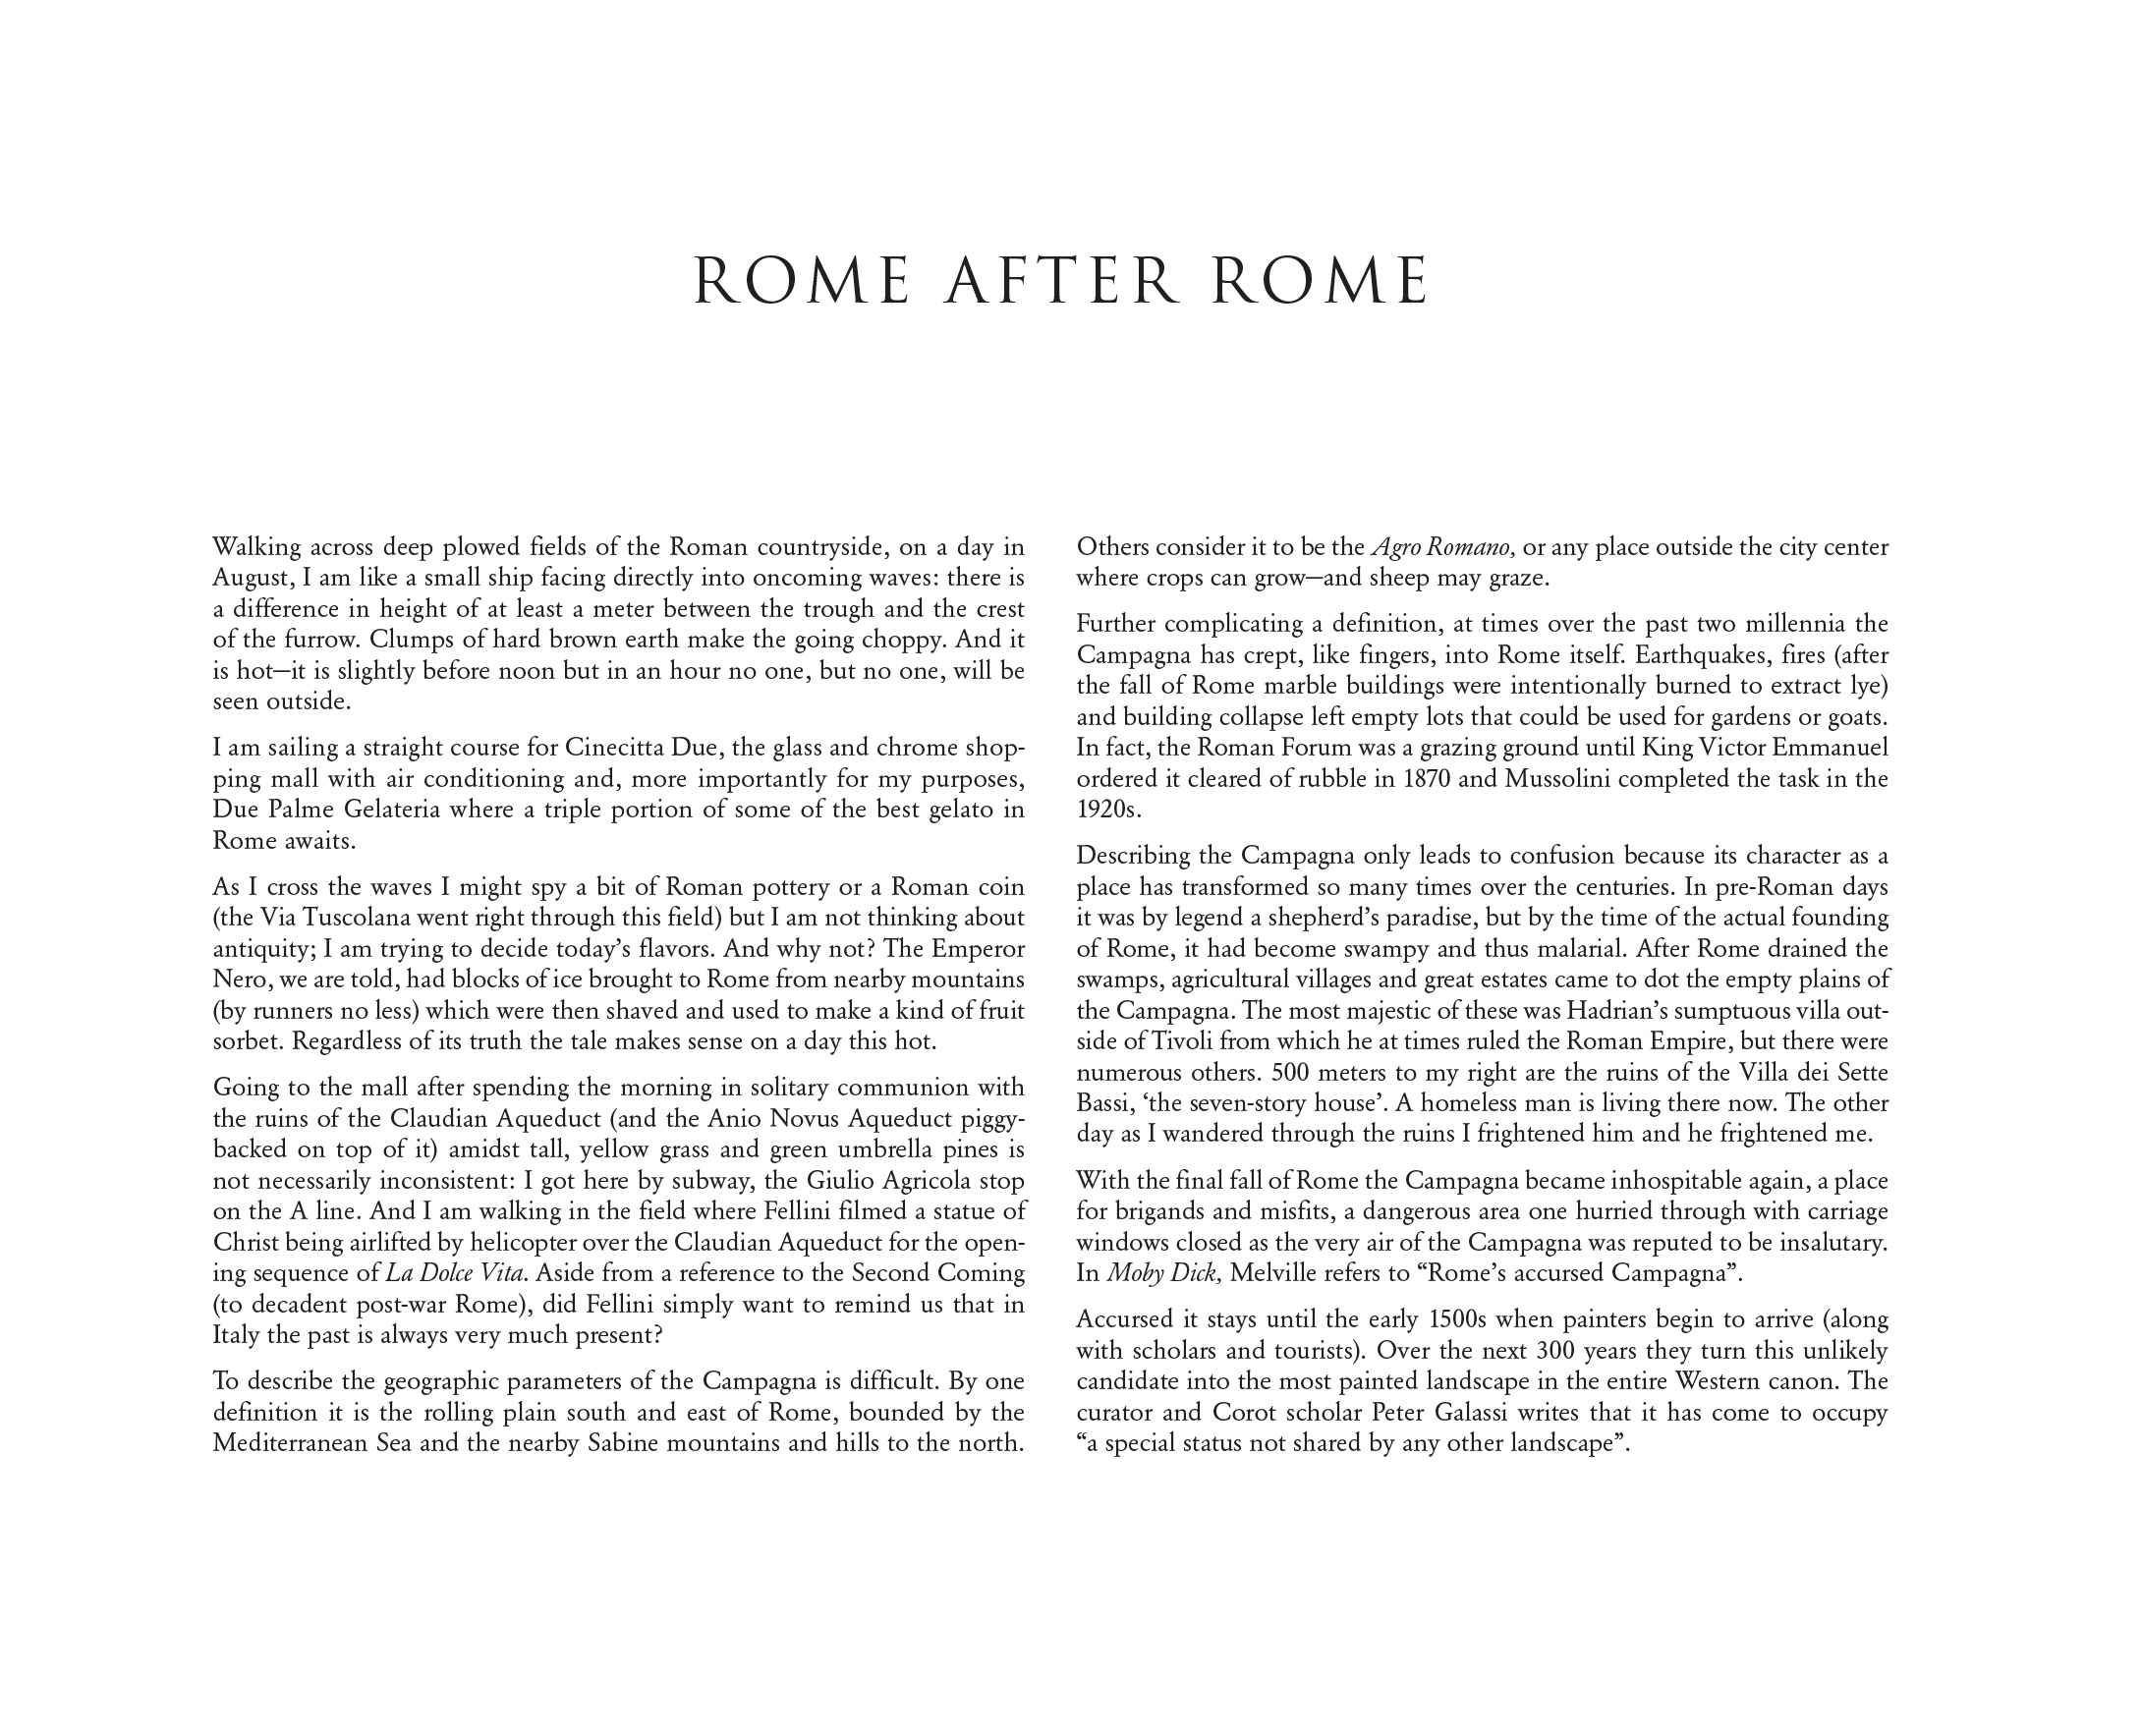 History Of English Essay Romeafterromeessayjpg Personal Essay Examples High School also Essays And Term Papers Rome After Rome  Joel Sternfeld Essay Tips For High School